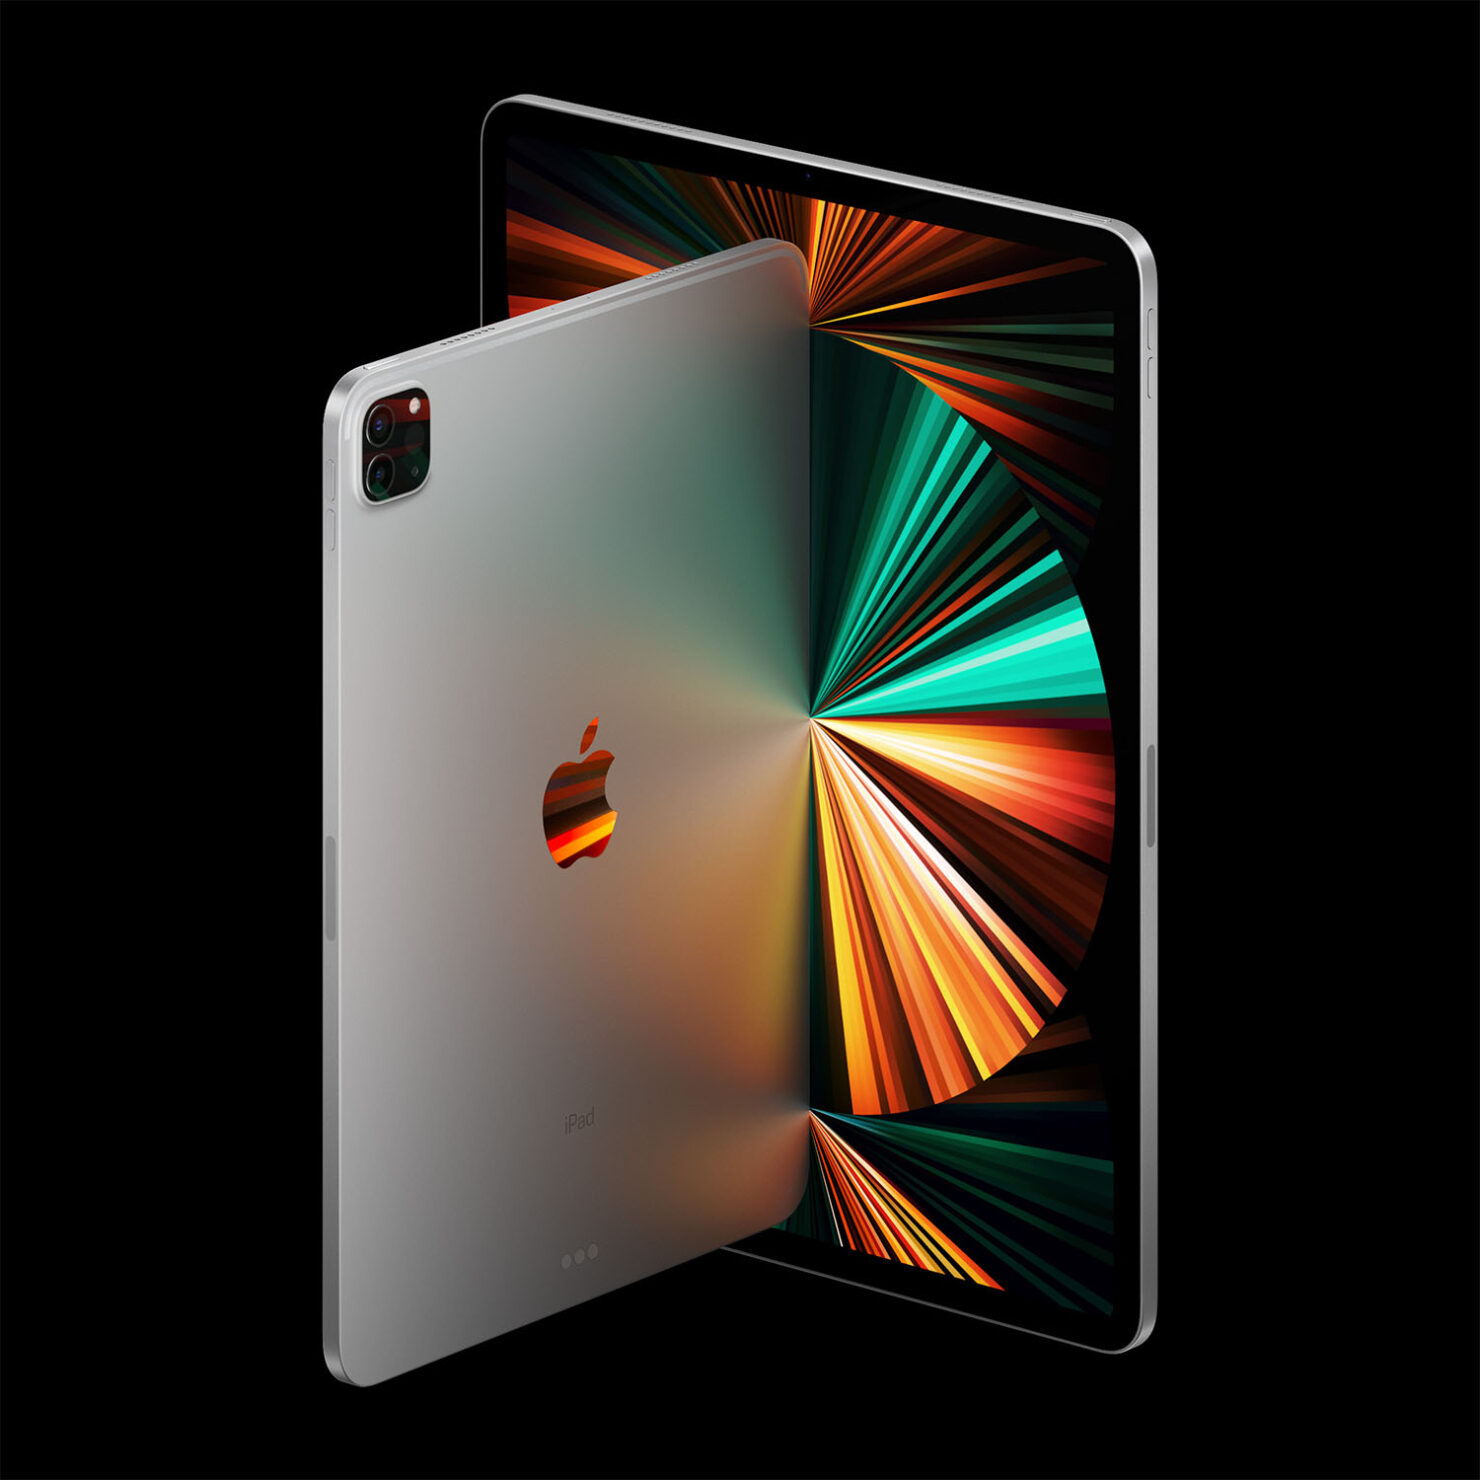 Early M1 iPad Pro Benchmarks Show It Is 50 Percent Faster Than 2020 Model; Beats 16-inch MacBook Pro Too